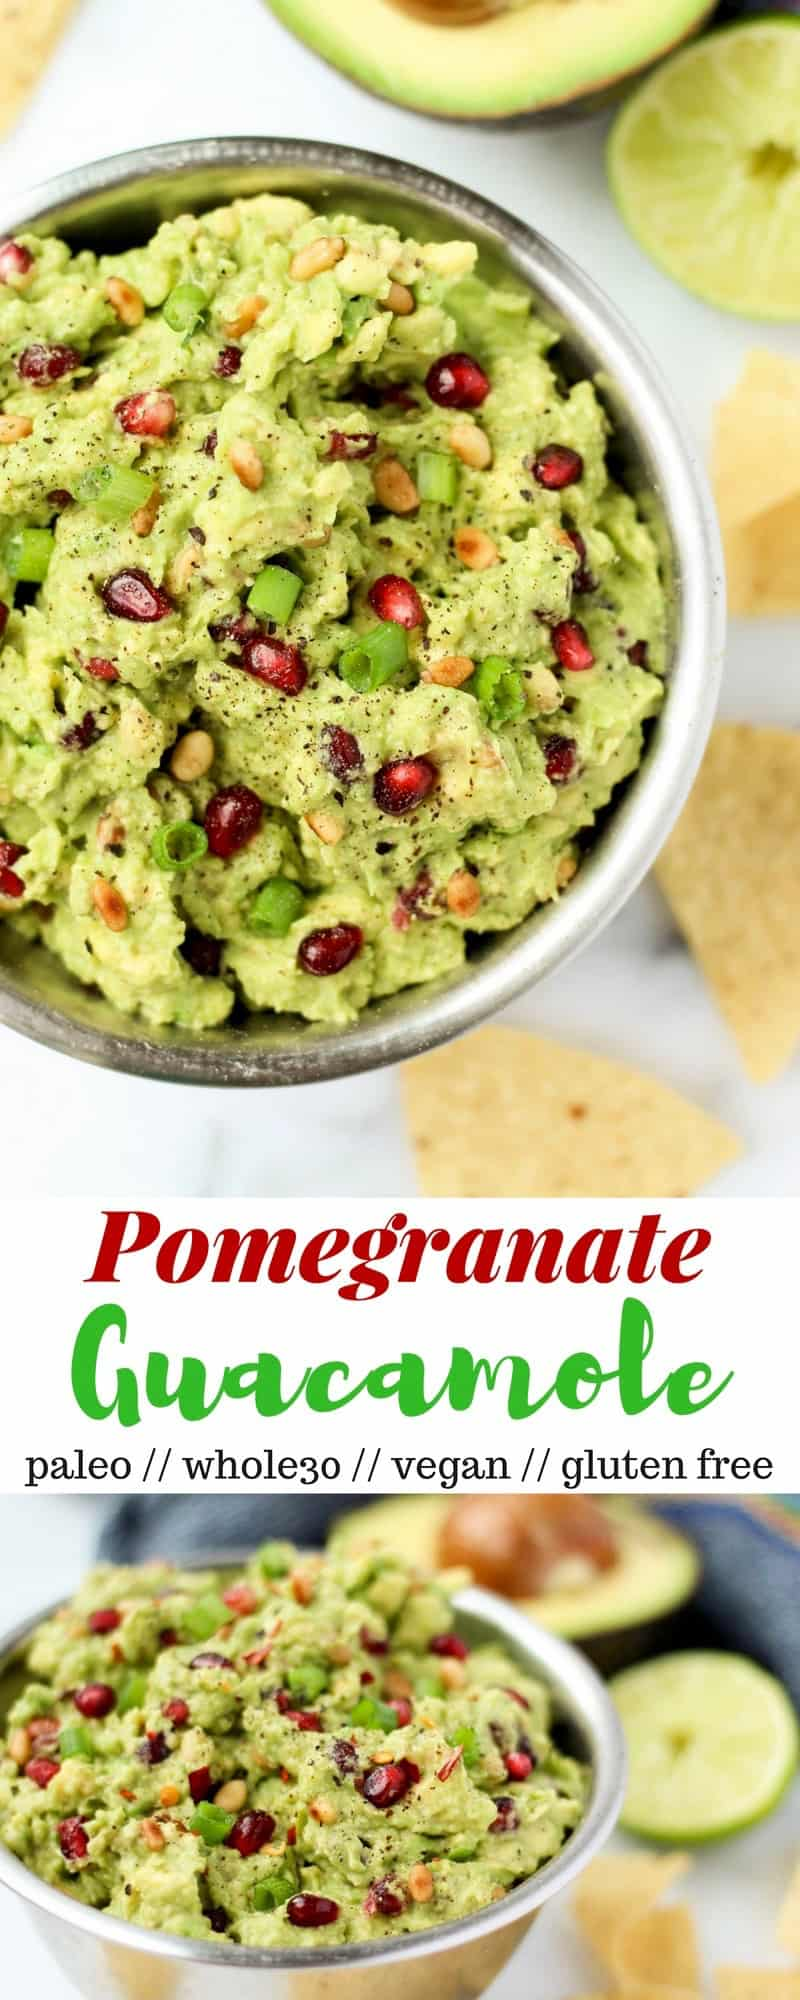 An easy & festive appetizer, this Pomegranate Guacamole comes together in 5 mins and is vegan, paleo, dairy and gluten free, & Whole30 approved! - Eat the Gains